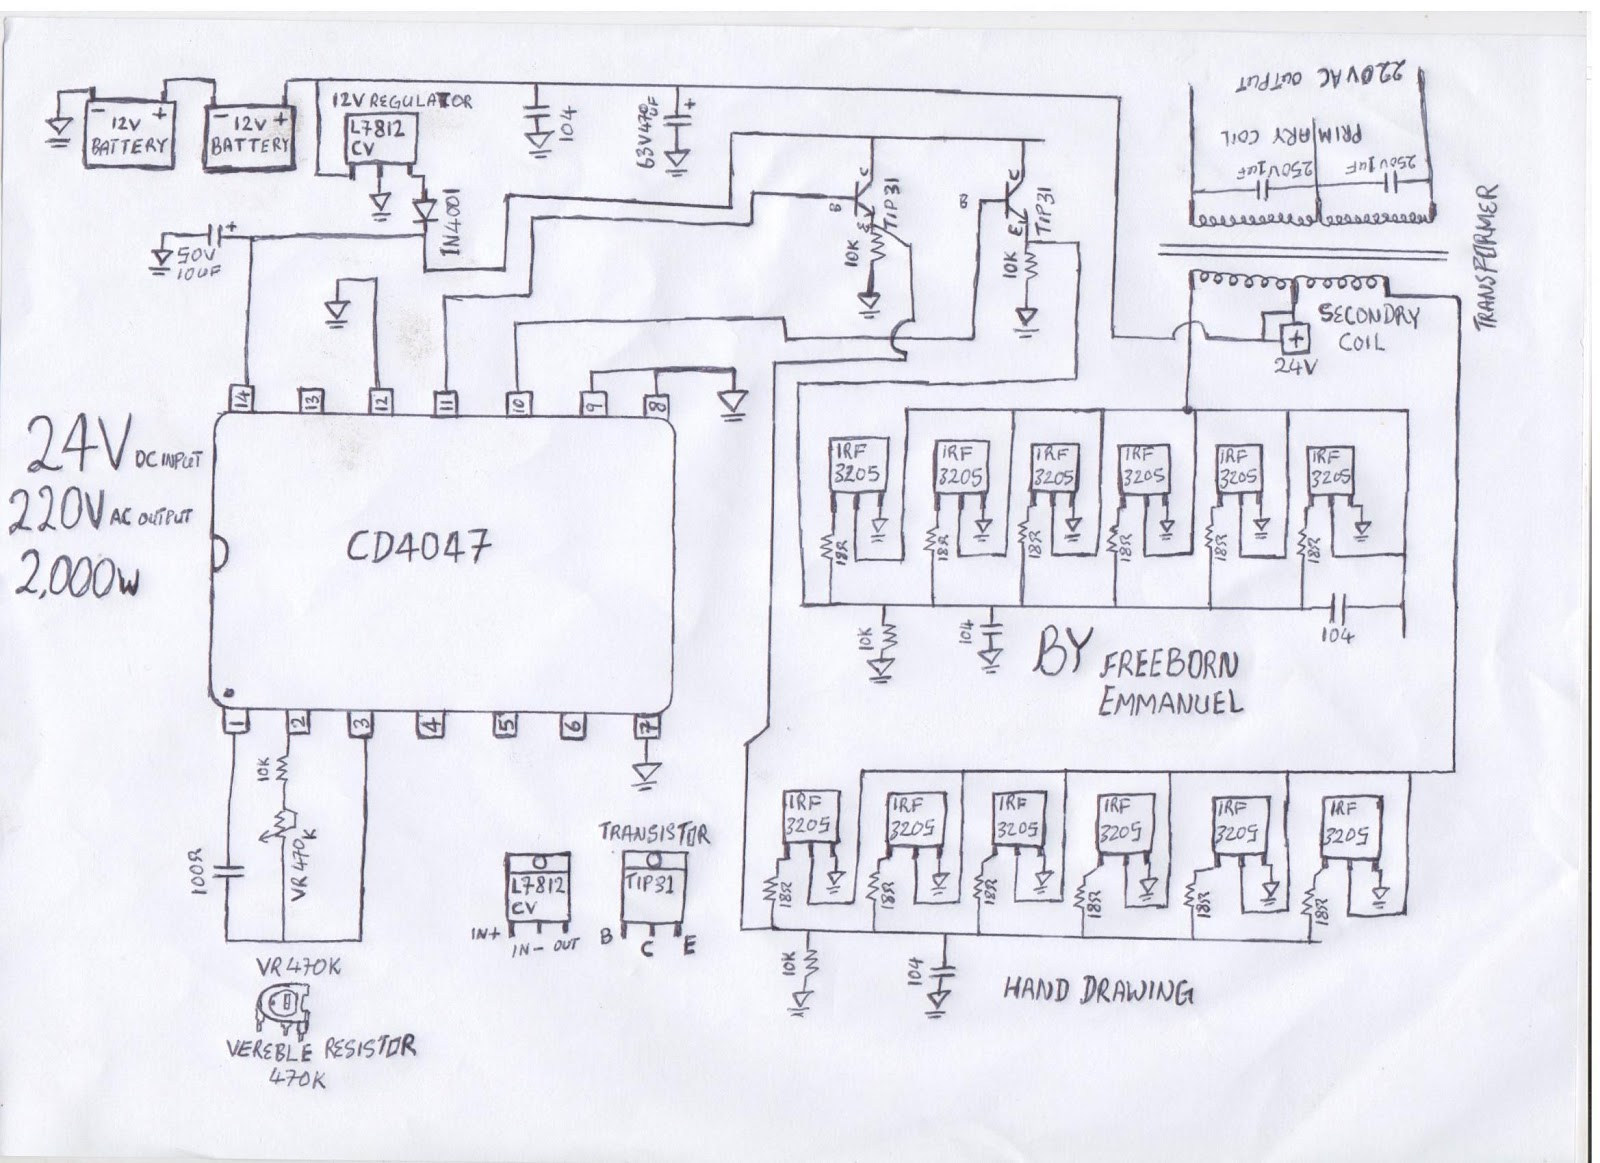 How to build a 2kva inverter circuit diagram 2000 watt inverter this is a simple 2kva inverter circuit diagram and can be use to power a fridge and a tv set a fan and dvd player and some lighting energy saving bulg swarovskicordoba Gallery